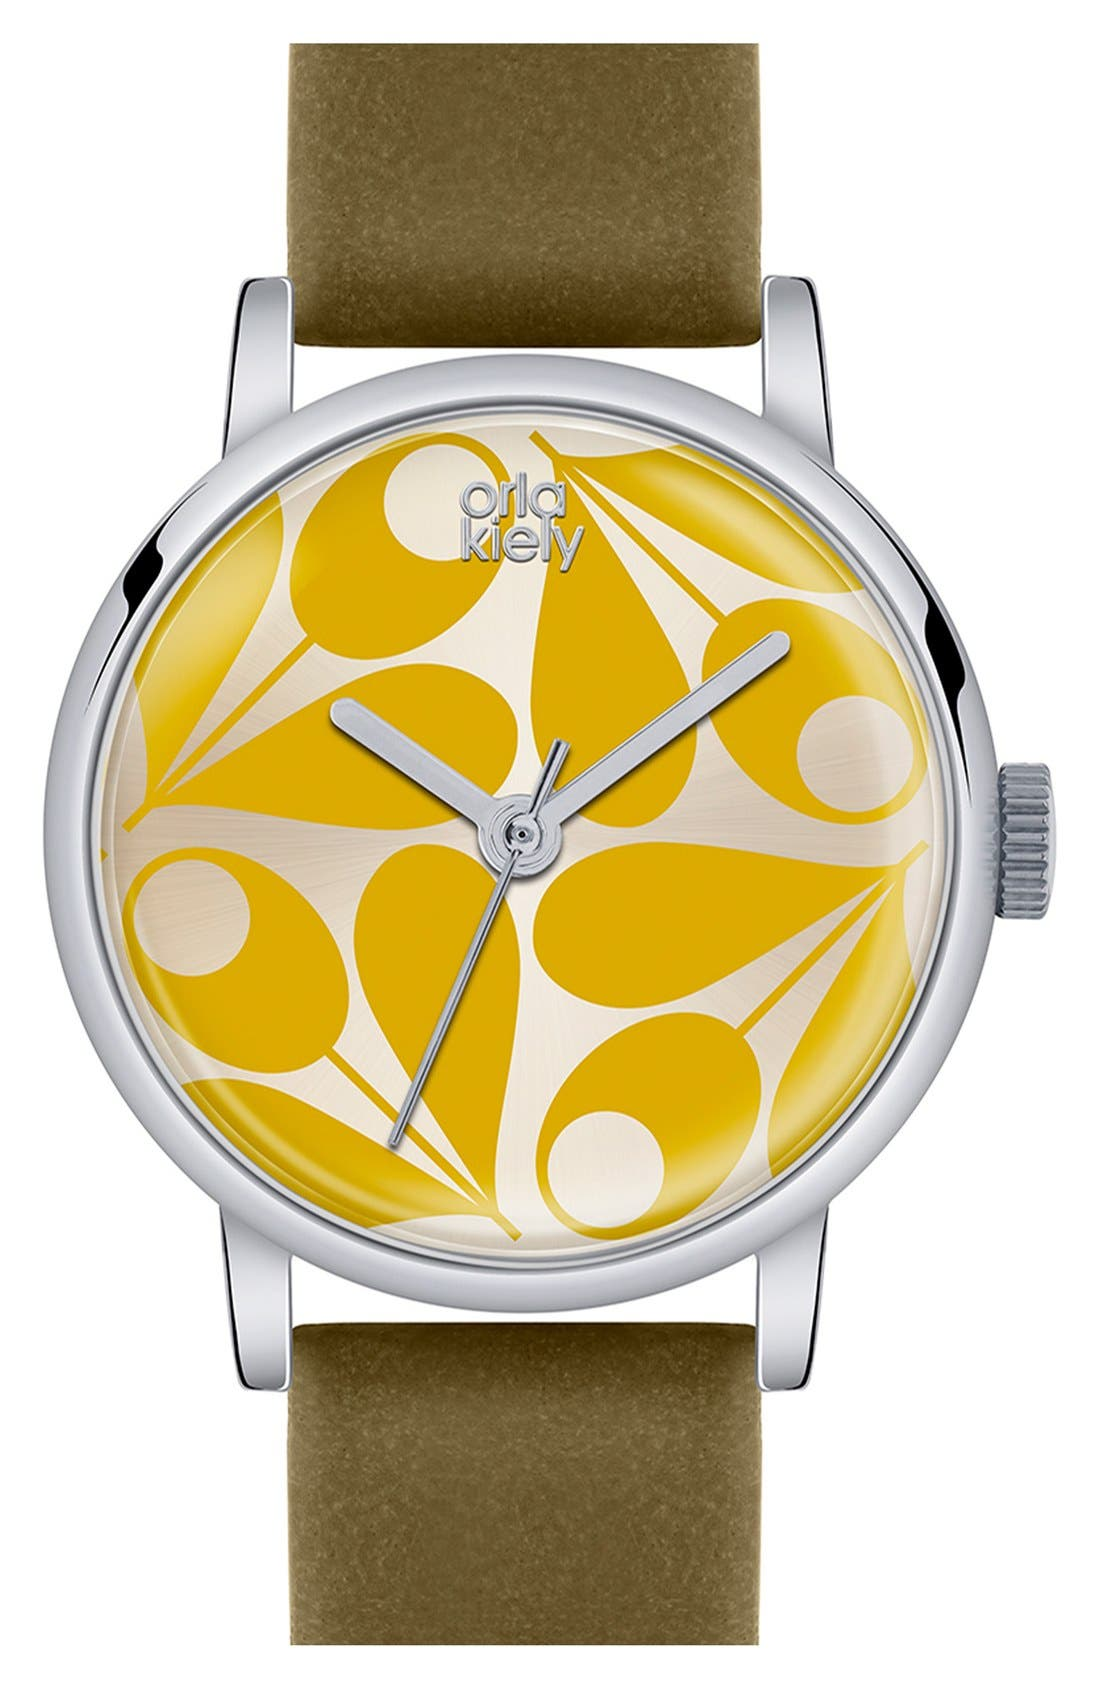 Main Image - Orla Kiely 'Patricia' Leather Strap Watch, 29mm